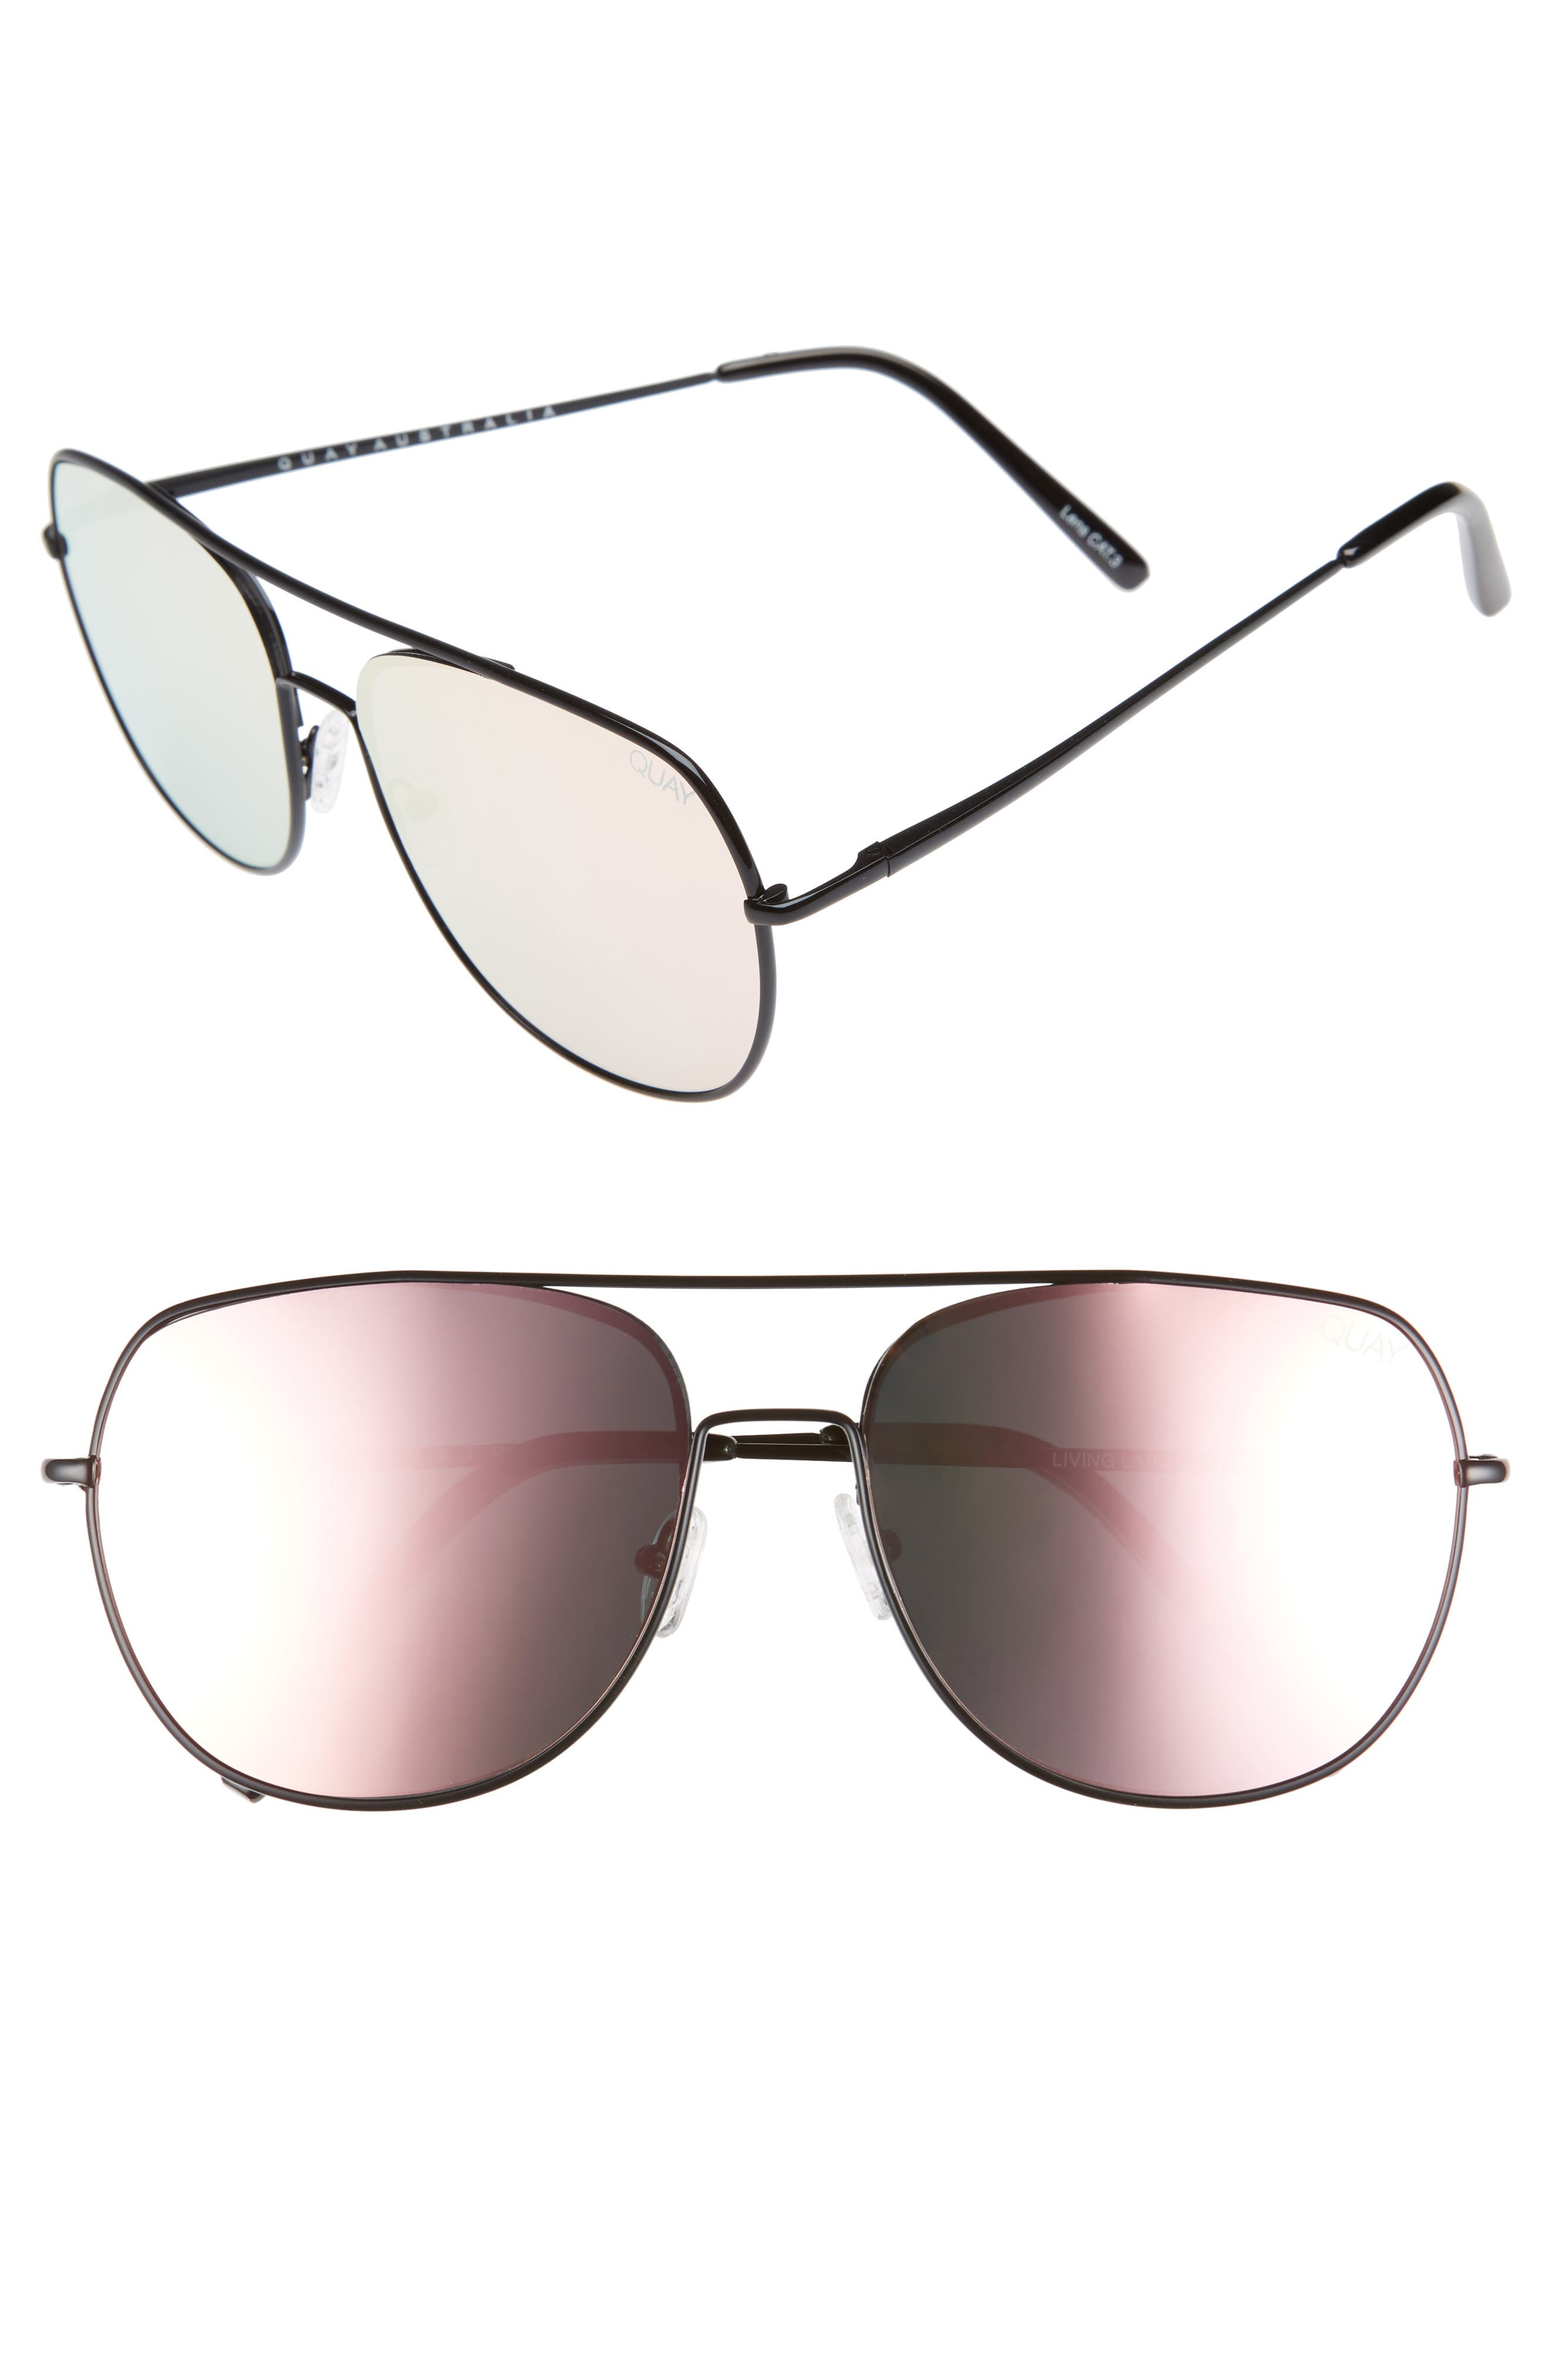 Quay Australia Living Large 60mm Mirrored Aviator Sunglasses